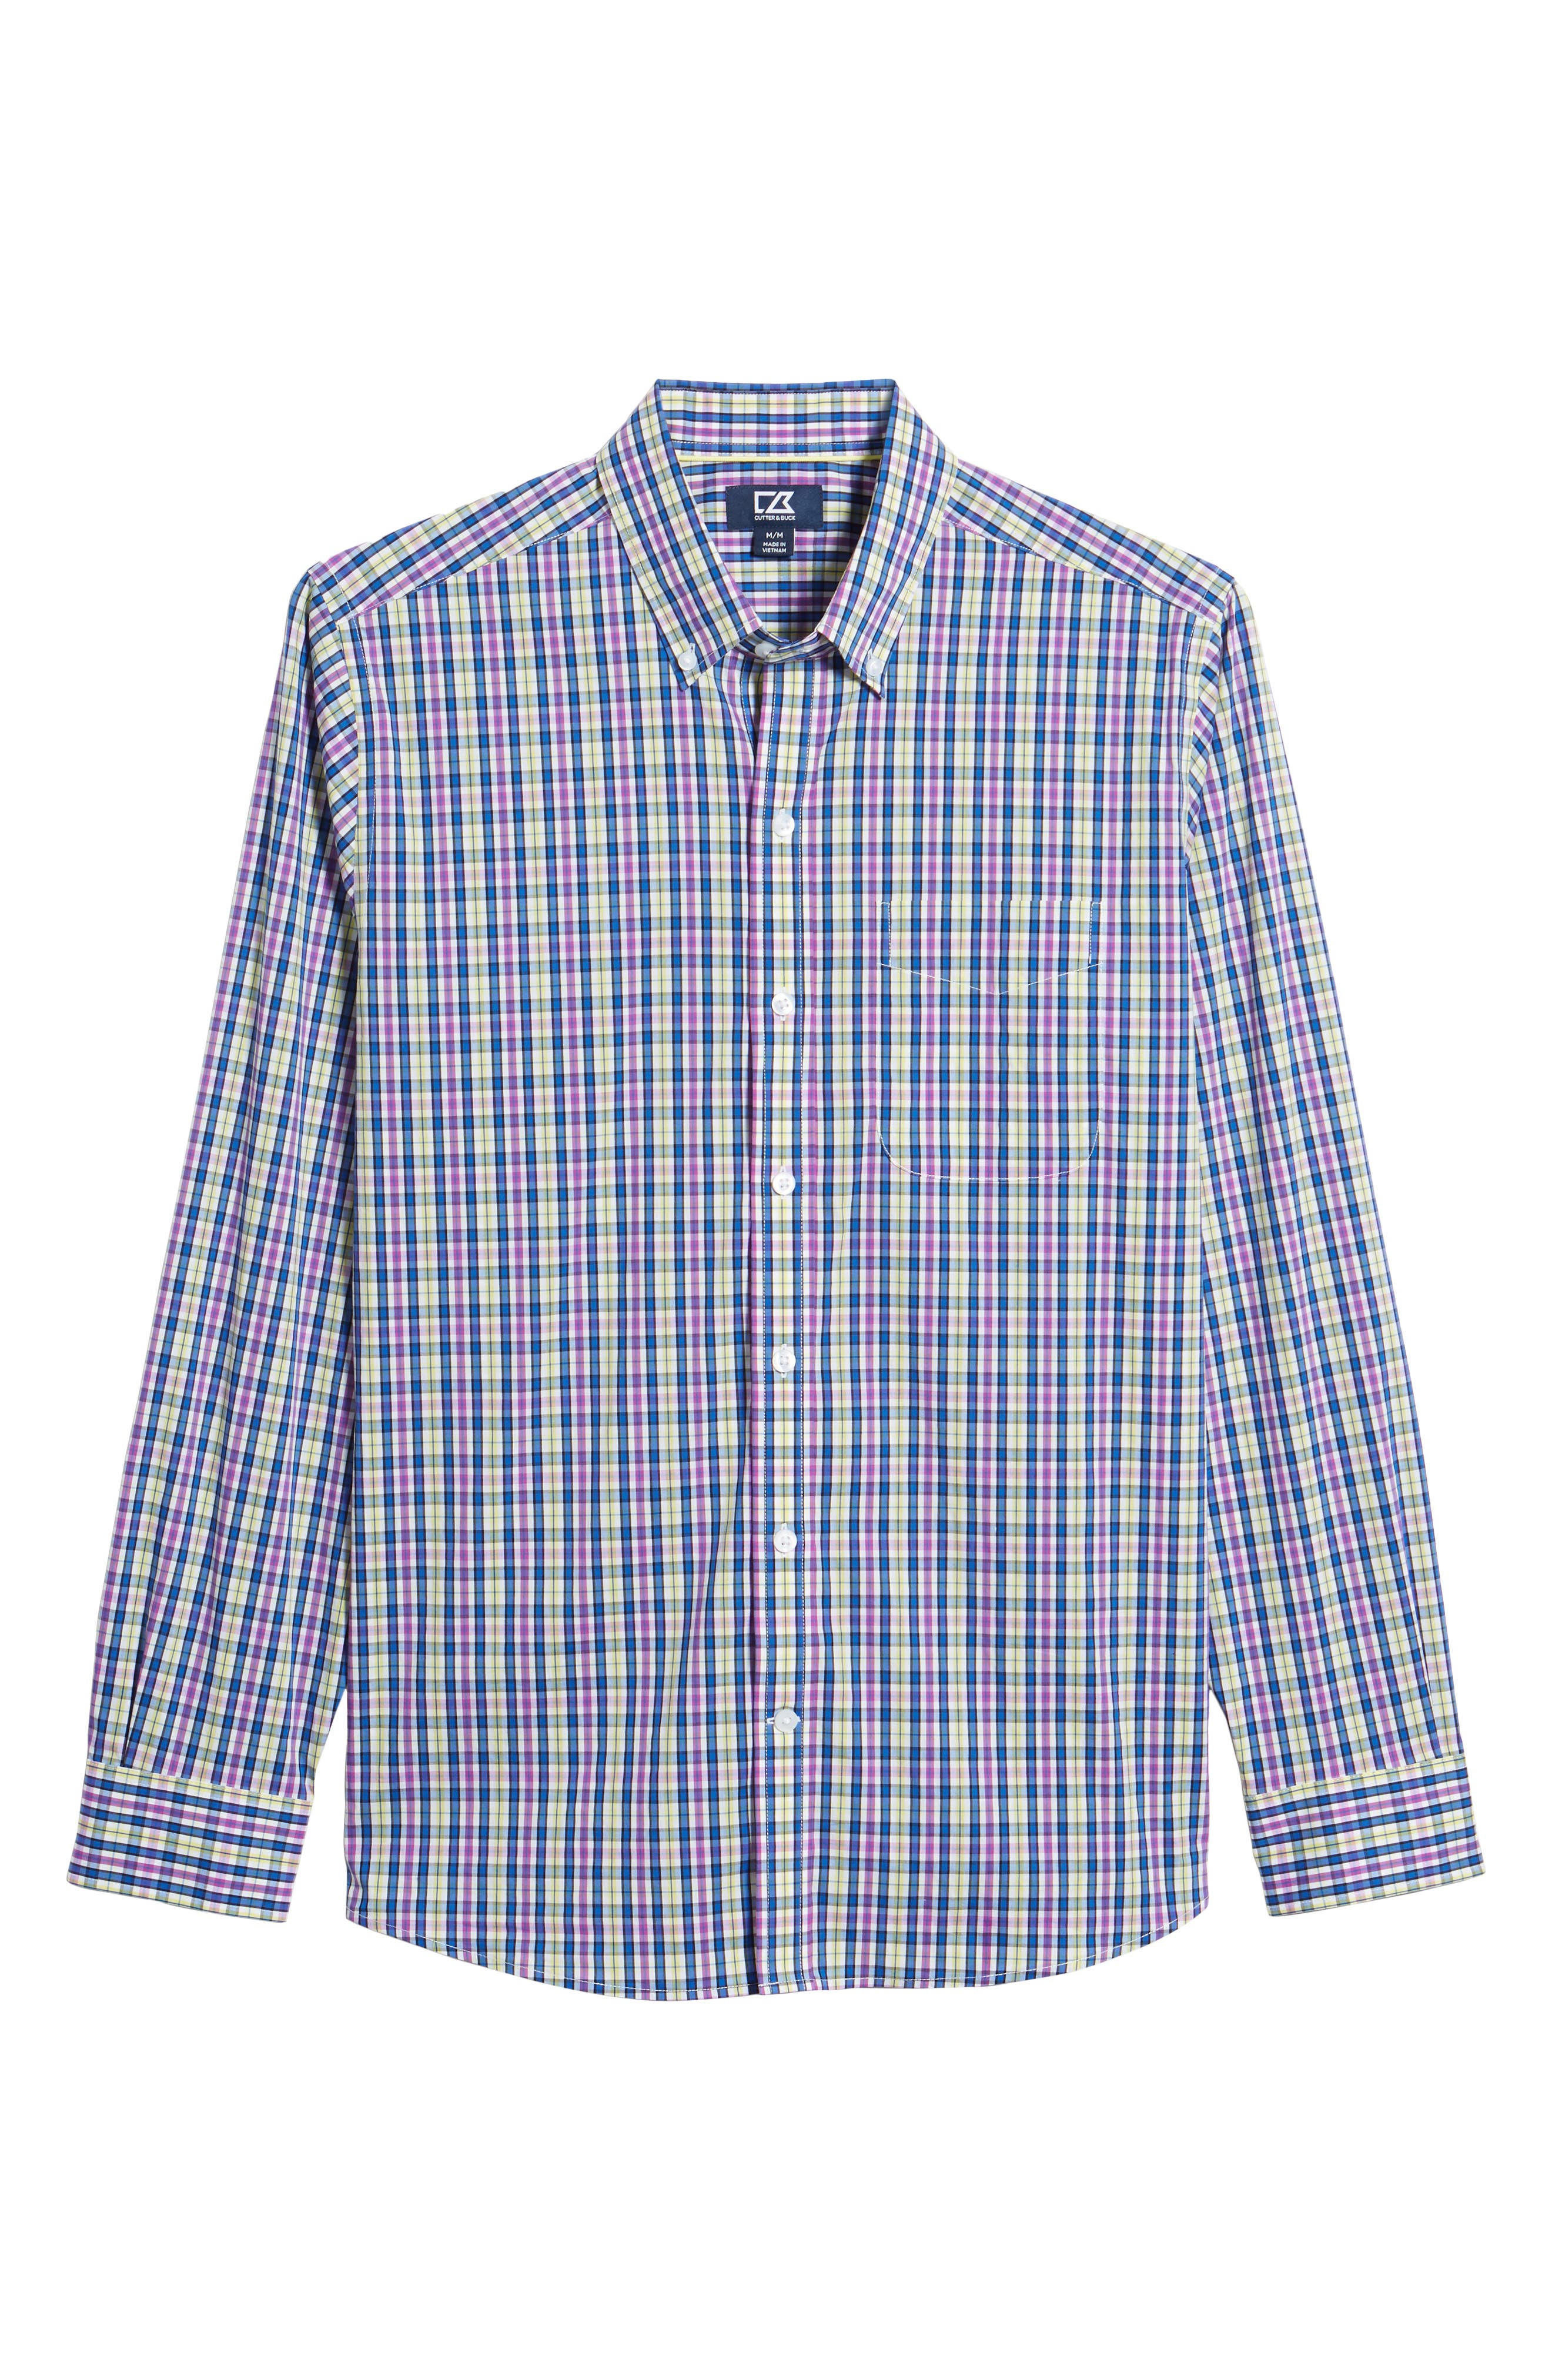 Anthony Plaid Performance Sport Shirt,                             Alternate thumbnail 6, color,                             Limelight